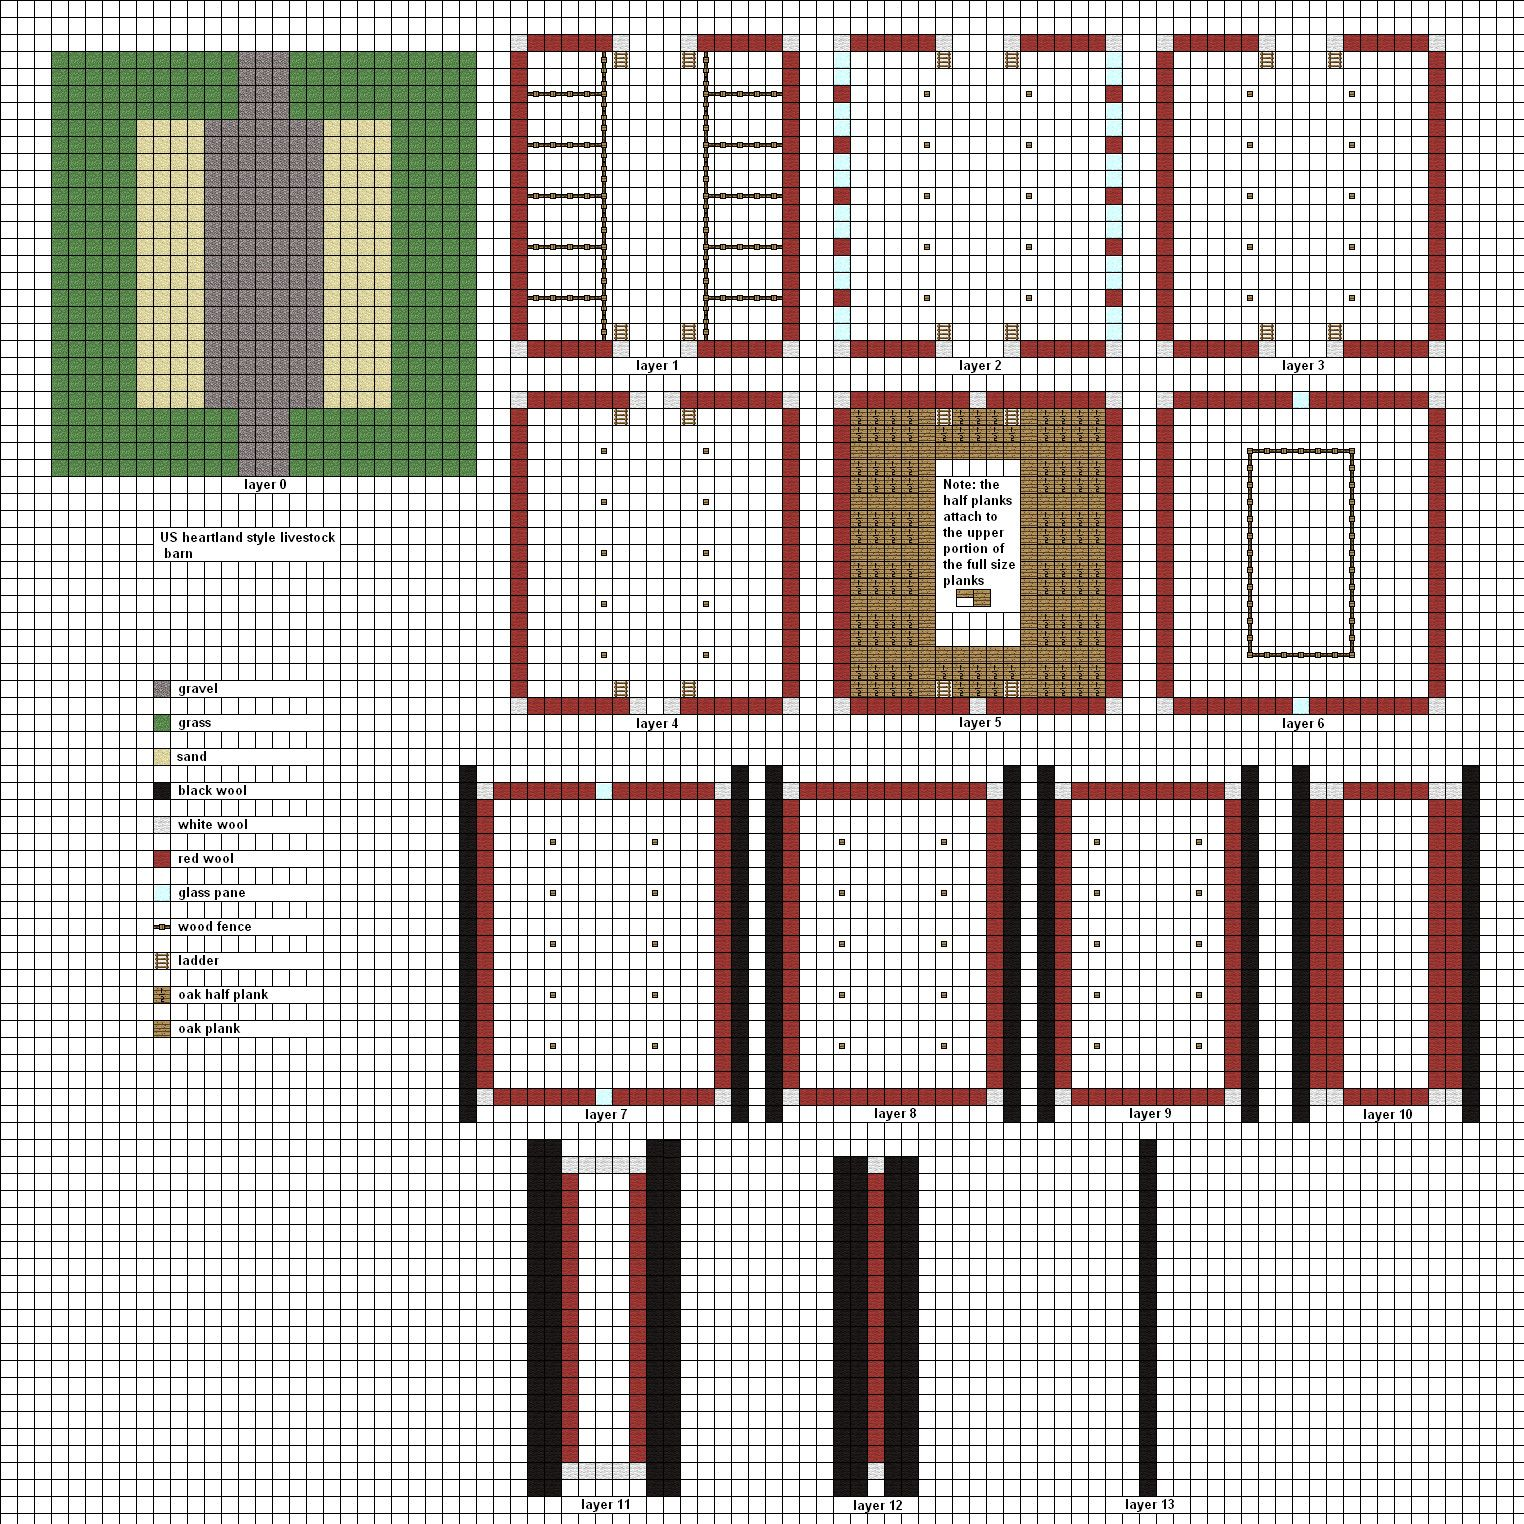 Npc village buildings by coltcoyote on deviantart apps directories - Minecraft Livestock Barn By Coltcoyote Deviantart Com On Deviantart